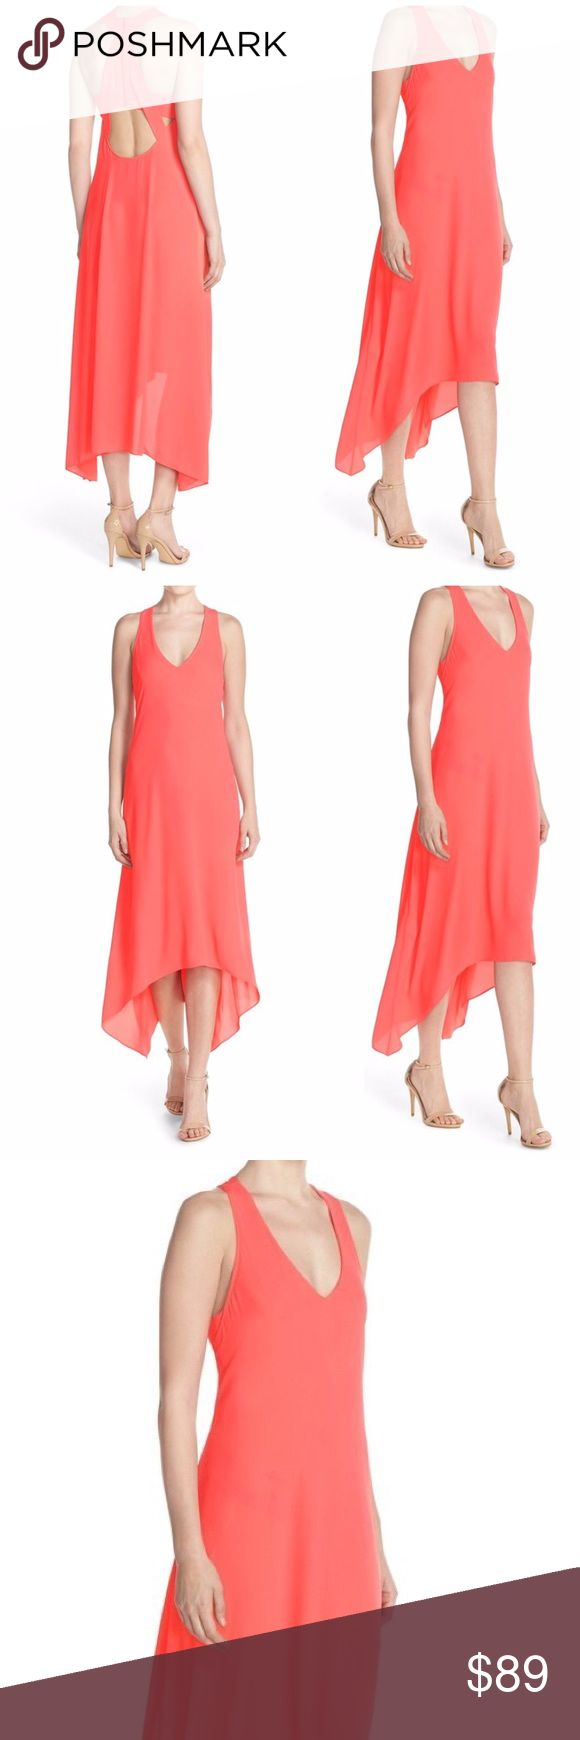 """BCBGMaxAzria Cutout Hi Low Maxi Dress BCBGMAXAZRIA Ariell' Cutout Georgette High/Low Maxi Mid-Length Dress Coral Reef. Details 45"""" to shortest point; 56"""" to longest point . Back zip closure. V-neck. Racerback. 100% polyester with 65% rayon, 30% nylon, 5% spandex contrast.  A medley of back-baring cutouts, a plunging V-neck and a high/low hem give contemporary edge to a light and flowy maxi dress crafted from silky georgette. BCBGMaxAzria Dresses Maxi"""